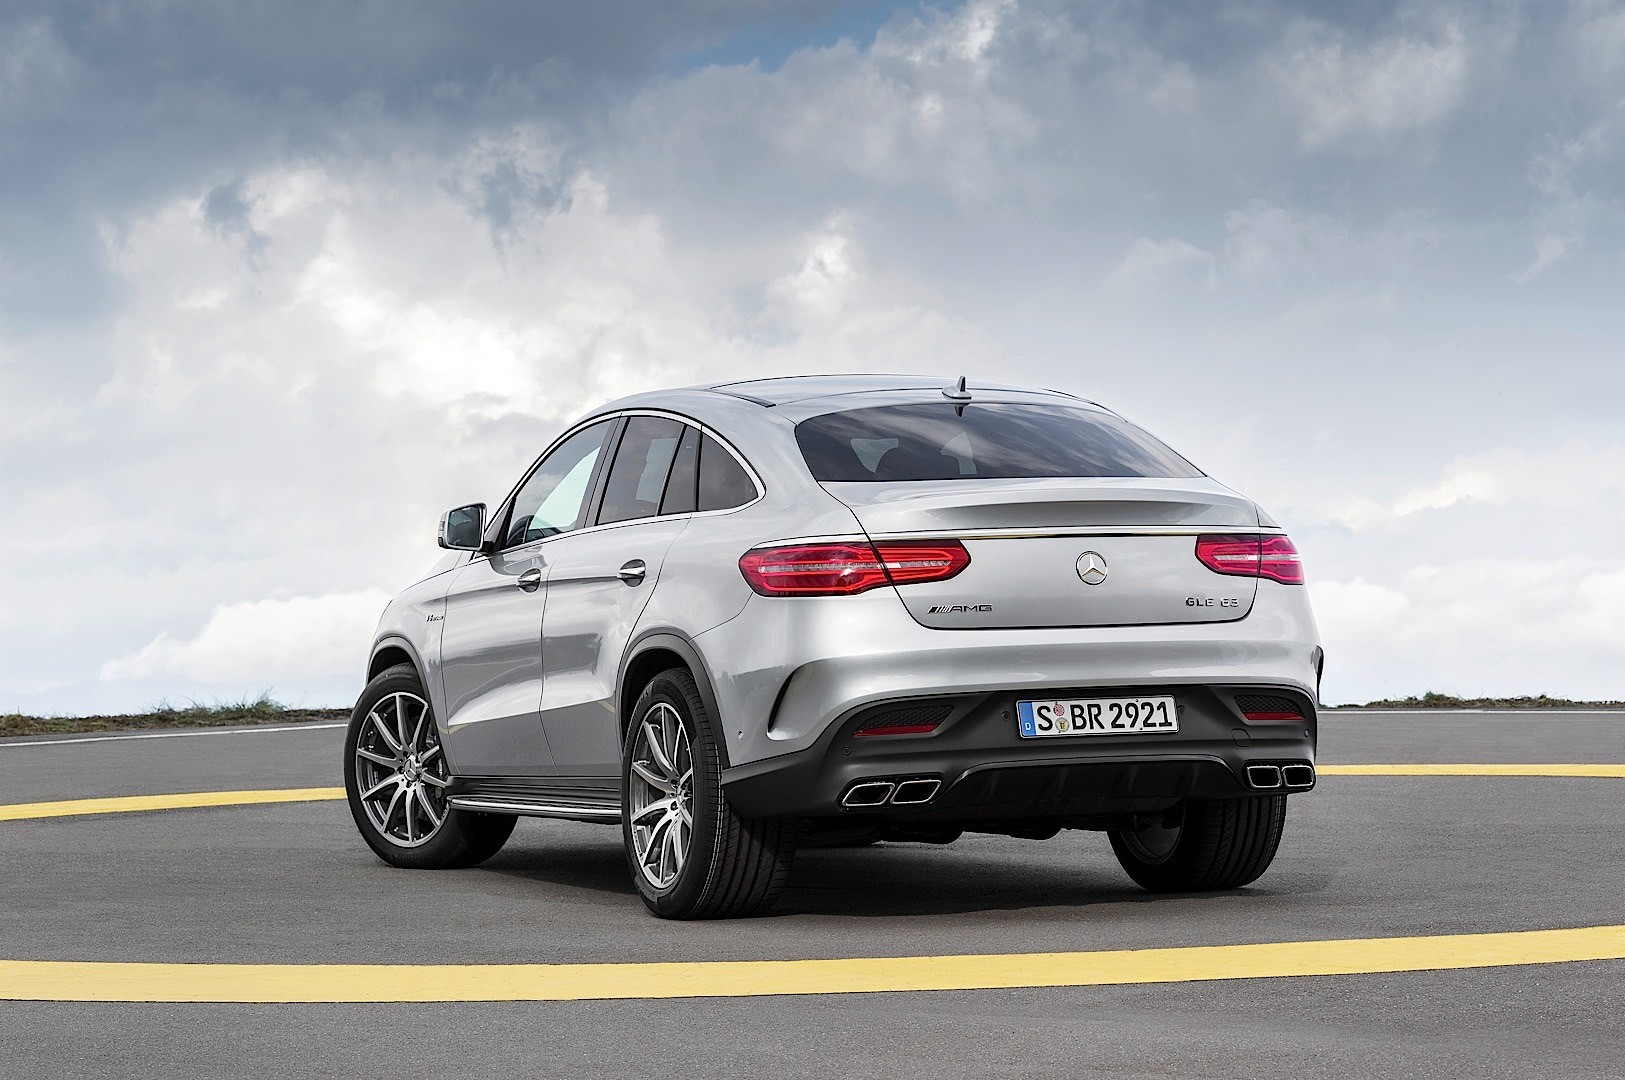 Mercedes amg gle coupe c292 specs 2015 2016 2017 for Mercedes benz amg suv price